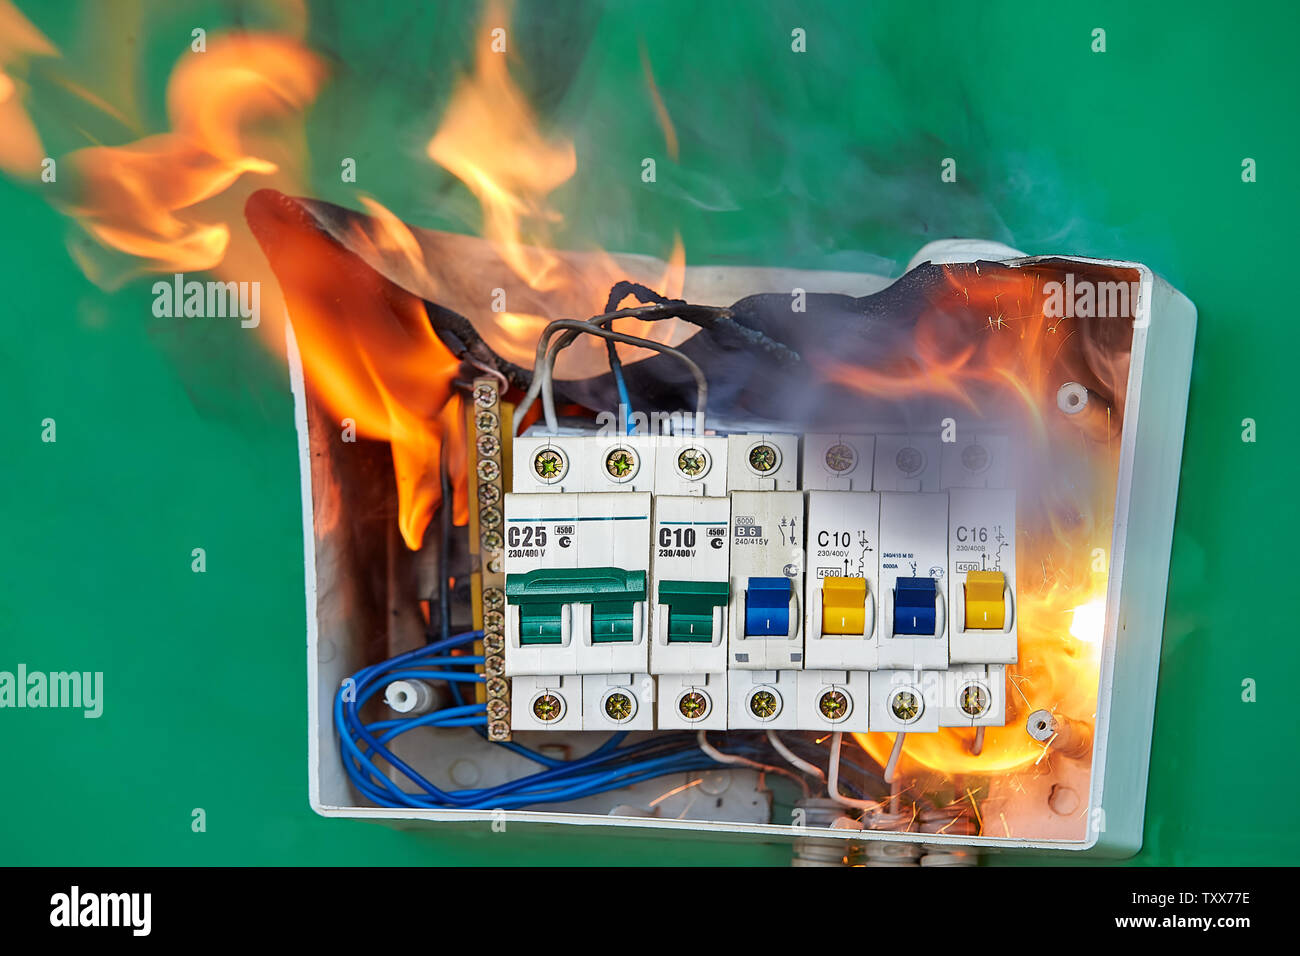 hight resolution of faulty wiring became the cause of distribution board fire bad electrical wiring systems caused fire